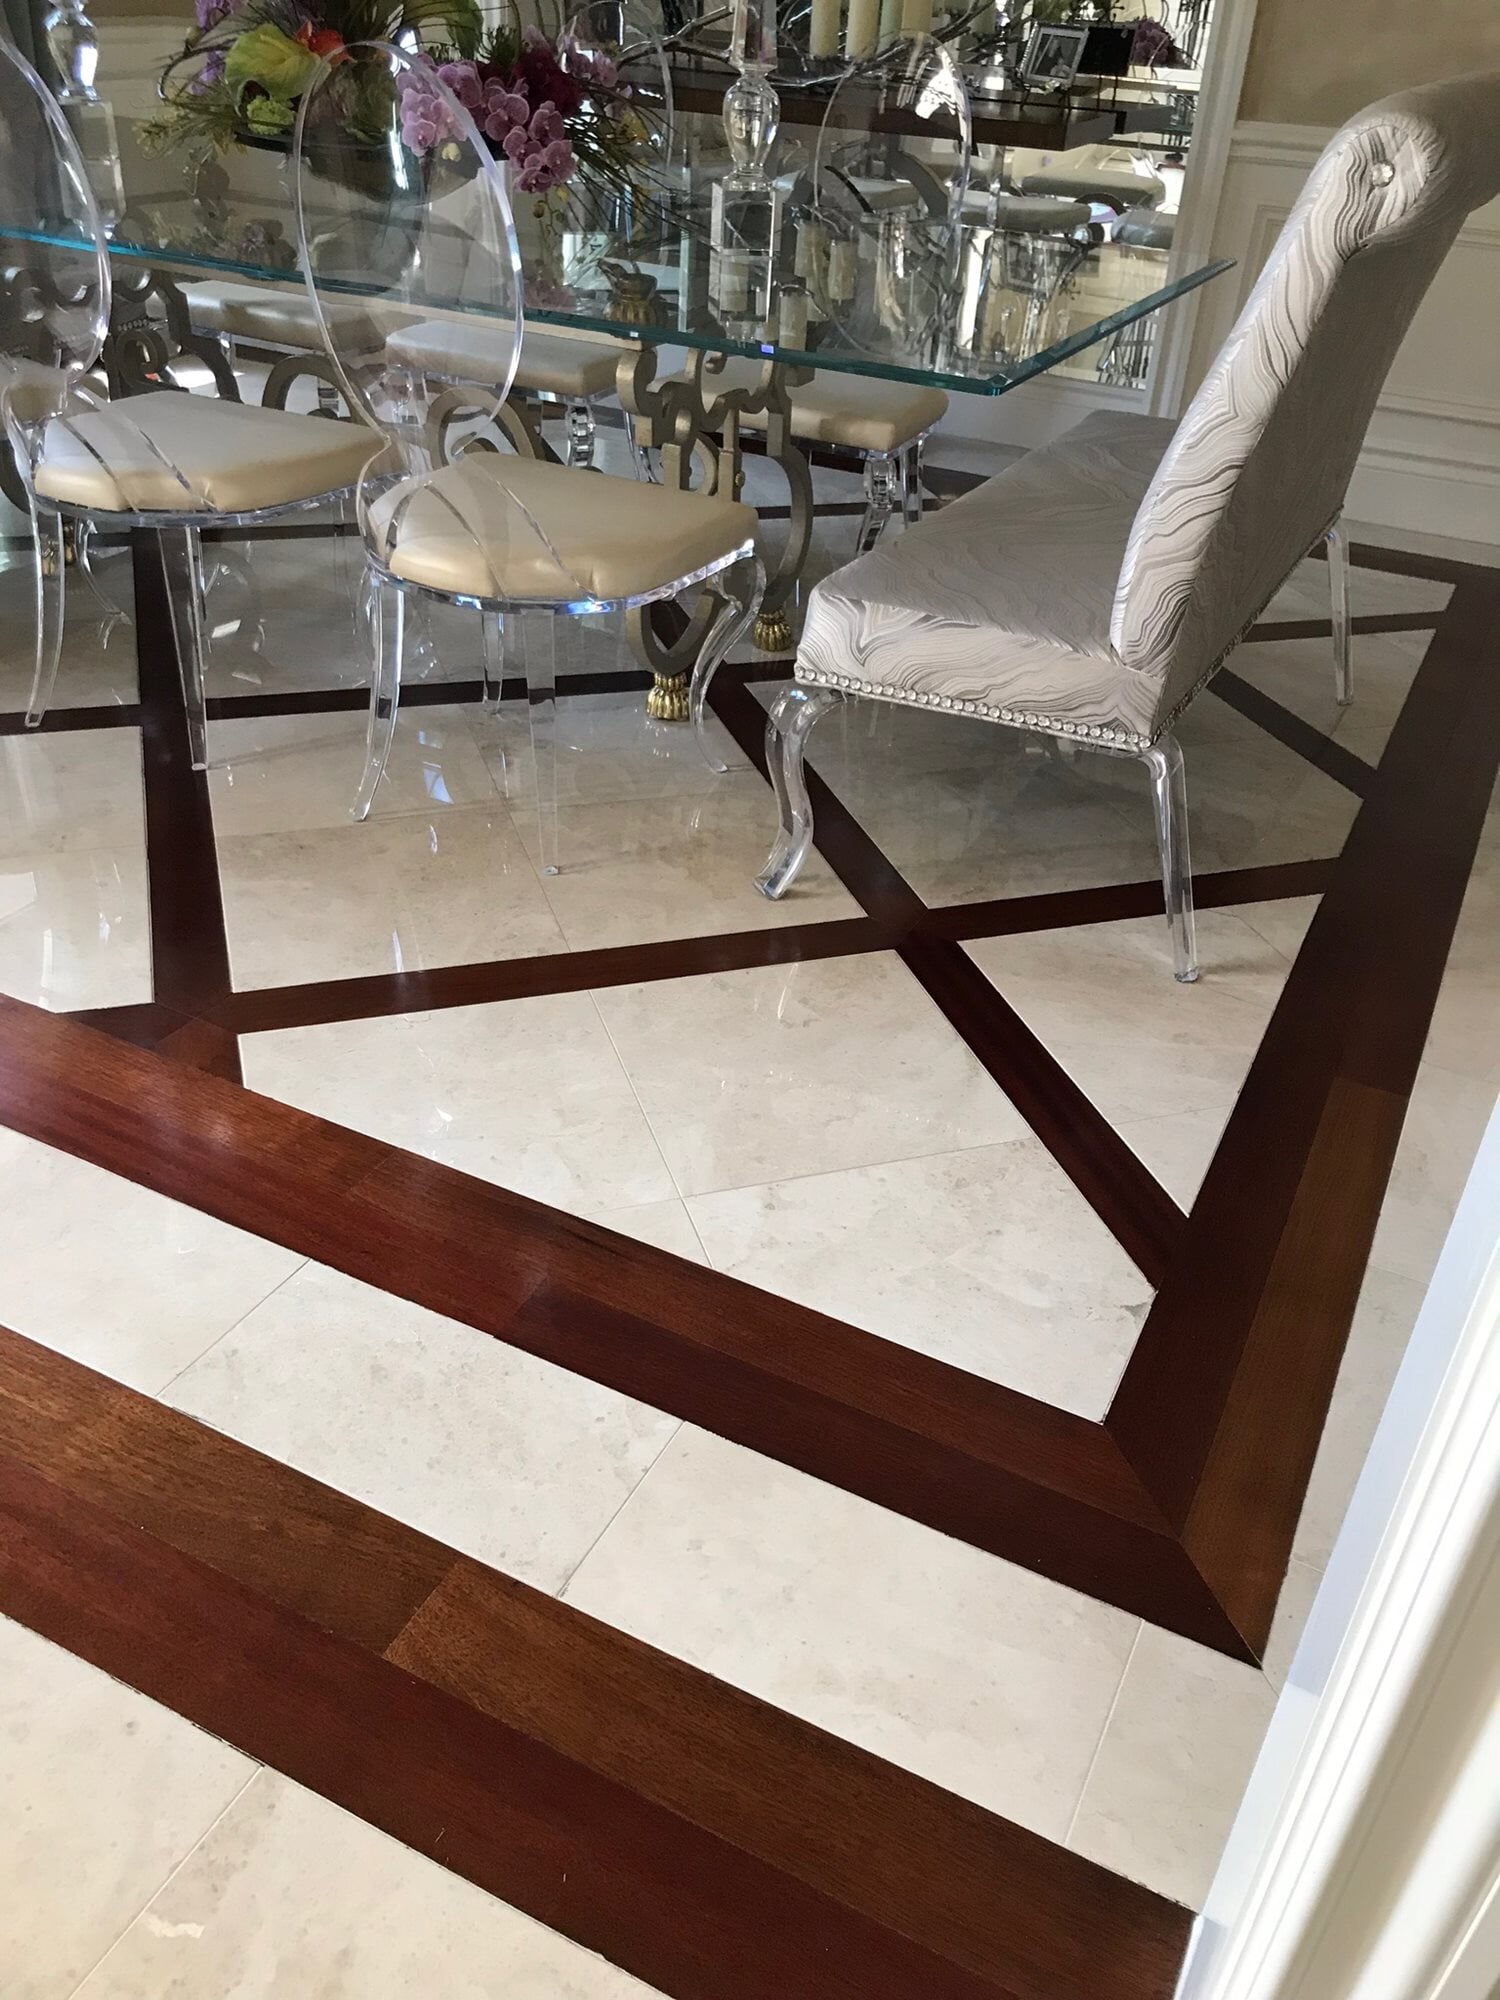 Custom inlay flooring in West Palm Beach, FL from Floors For You Kitchen & Bath